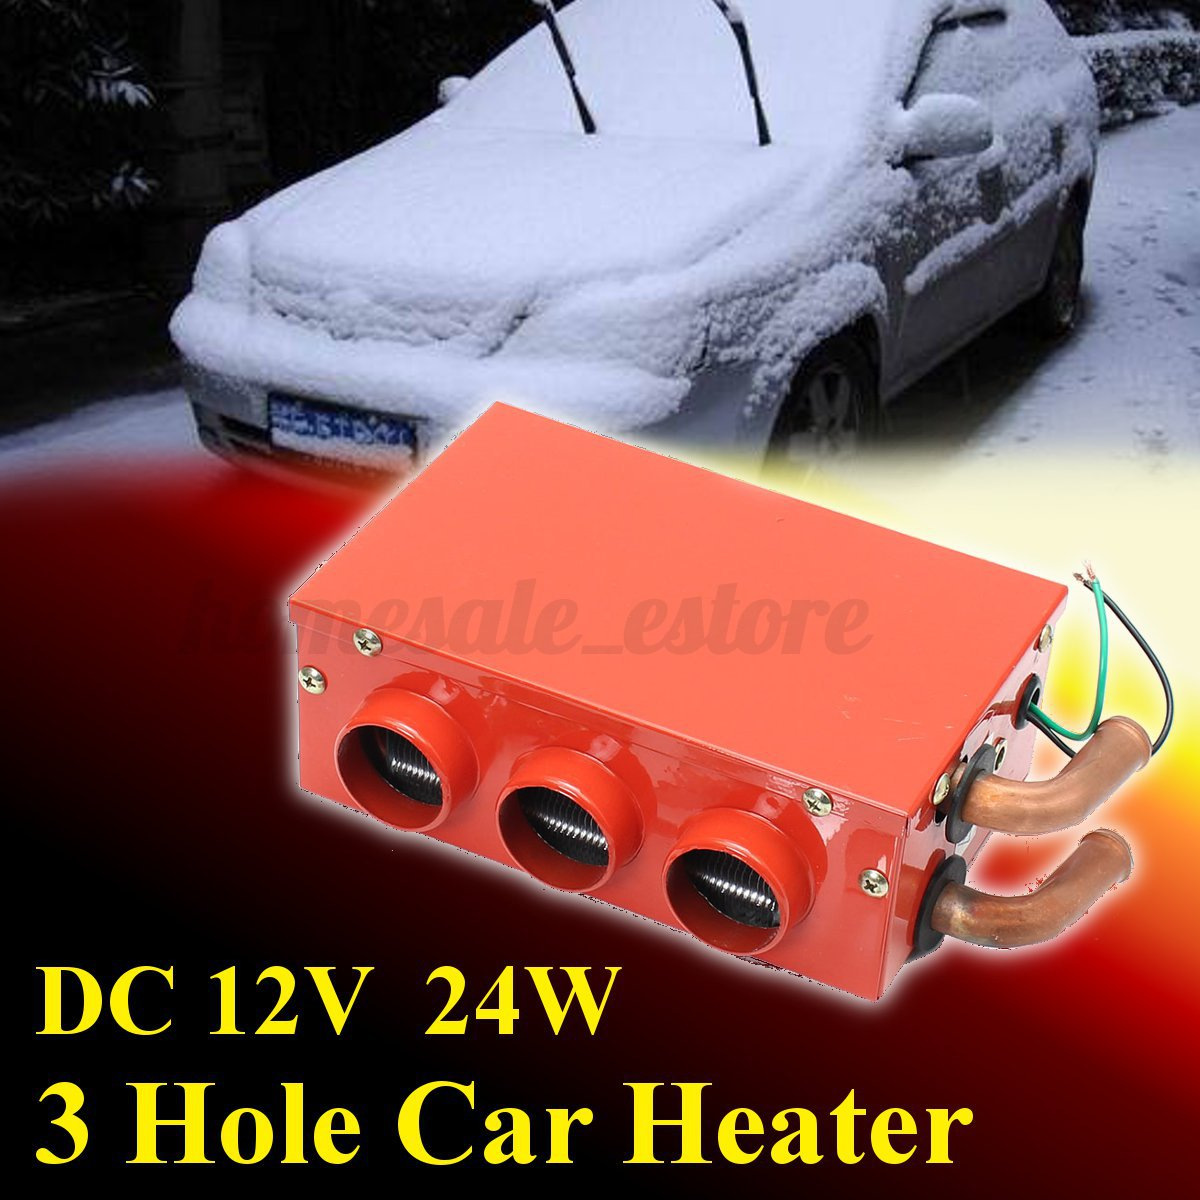 3-Hole-12V-24W-Portable-Car-Vehicle-Heating-Cooling-Heater-Demister-Defroster-1 thumbnail 2